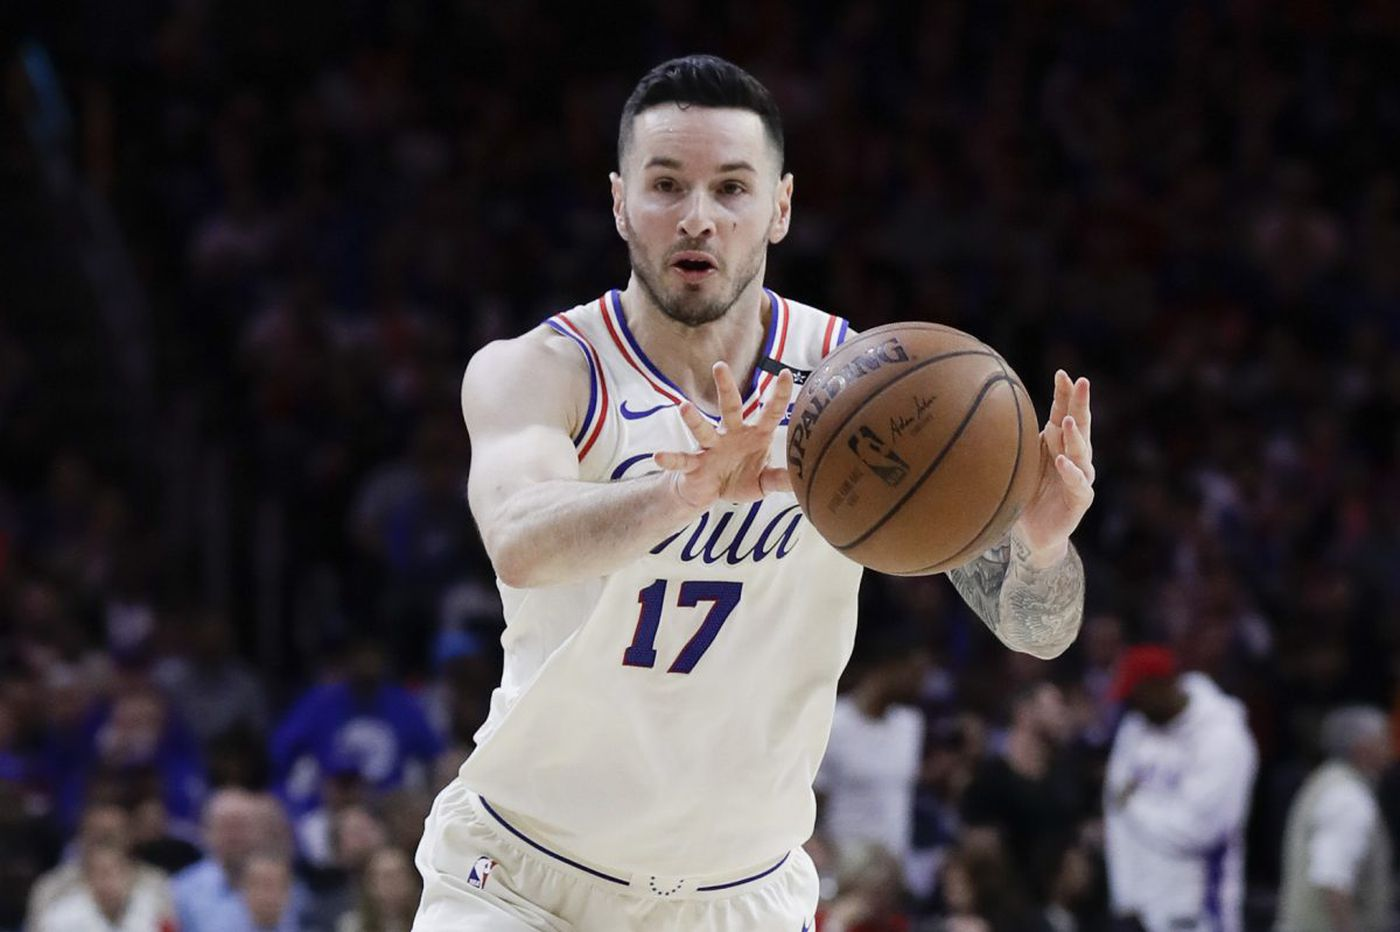 Sixers-Heat observations: JJ Redick's value, third-quarter dominance